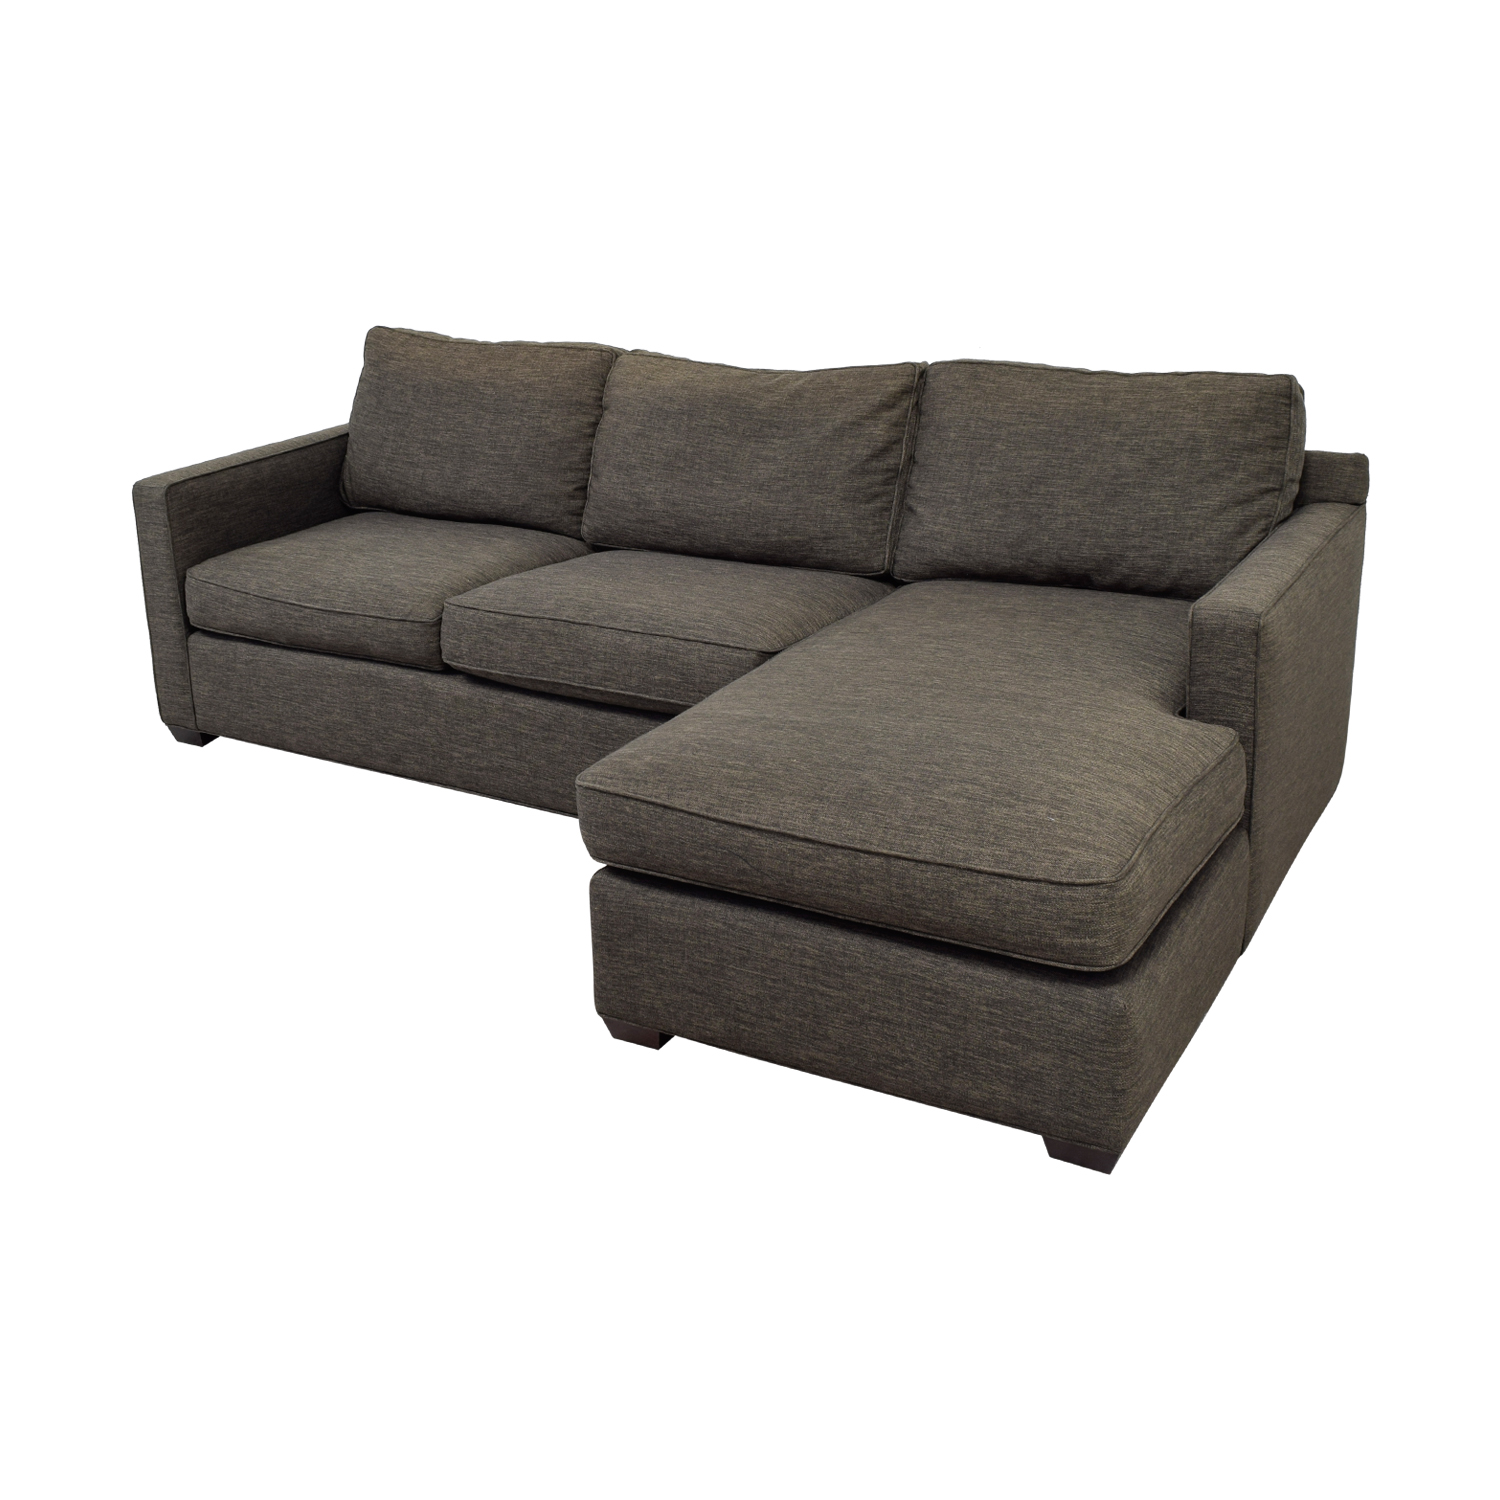 Crate & Barrel Davis Three Seat Lounger Sectional Sofa / Sectionals